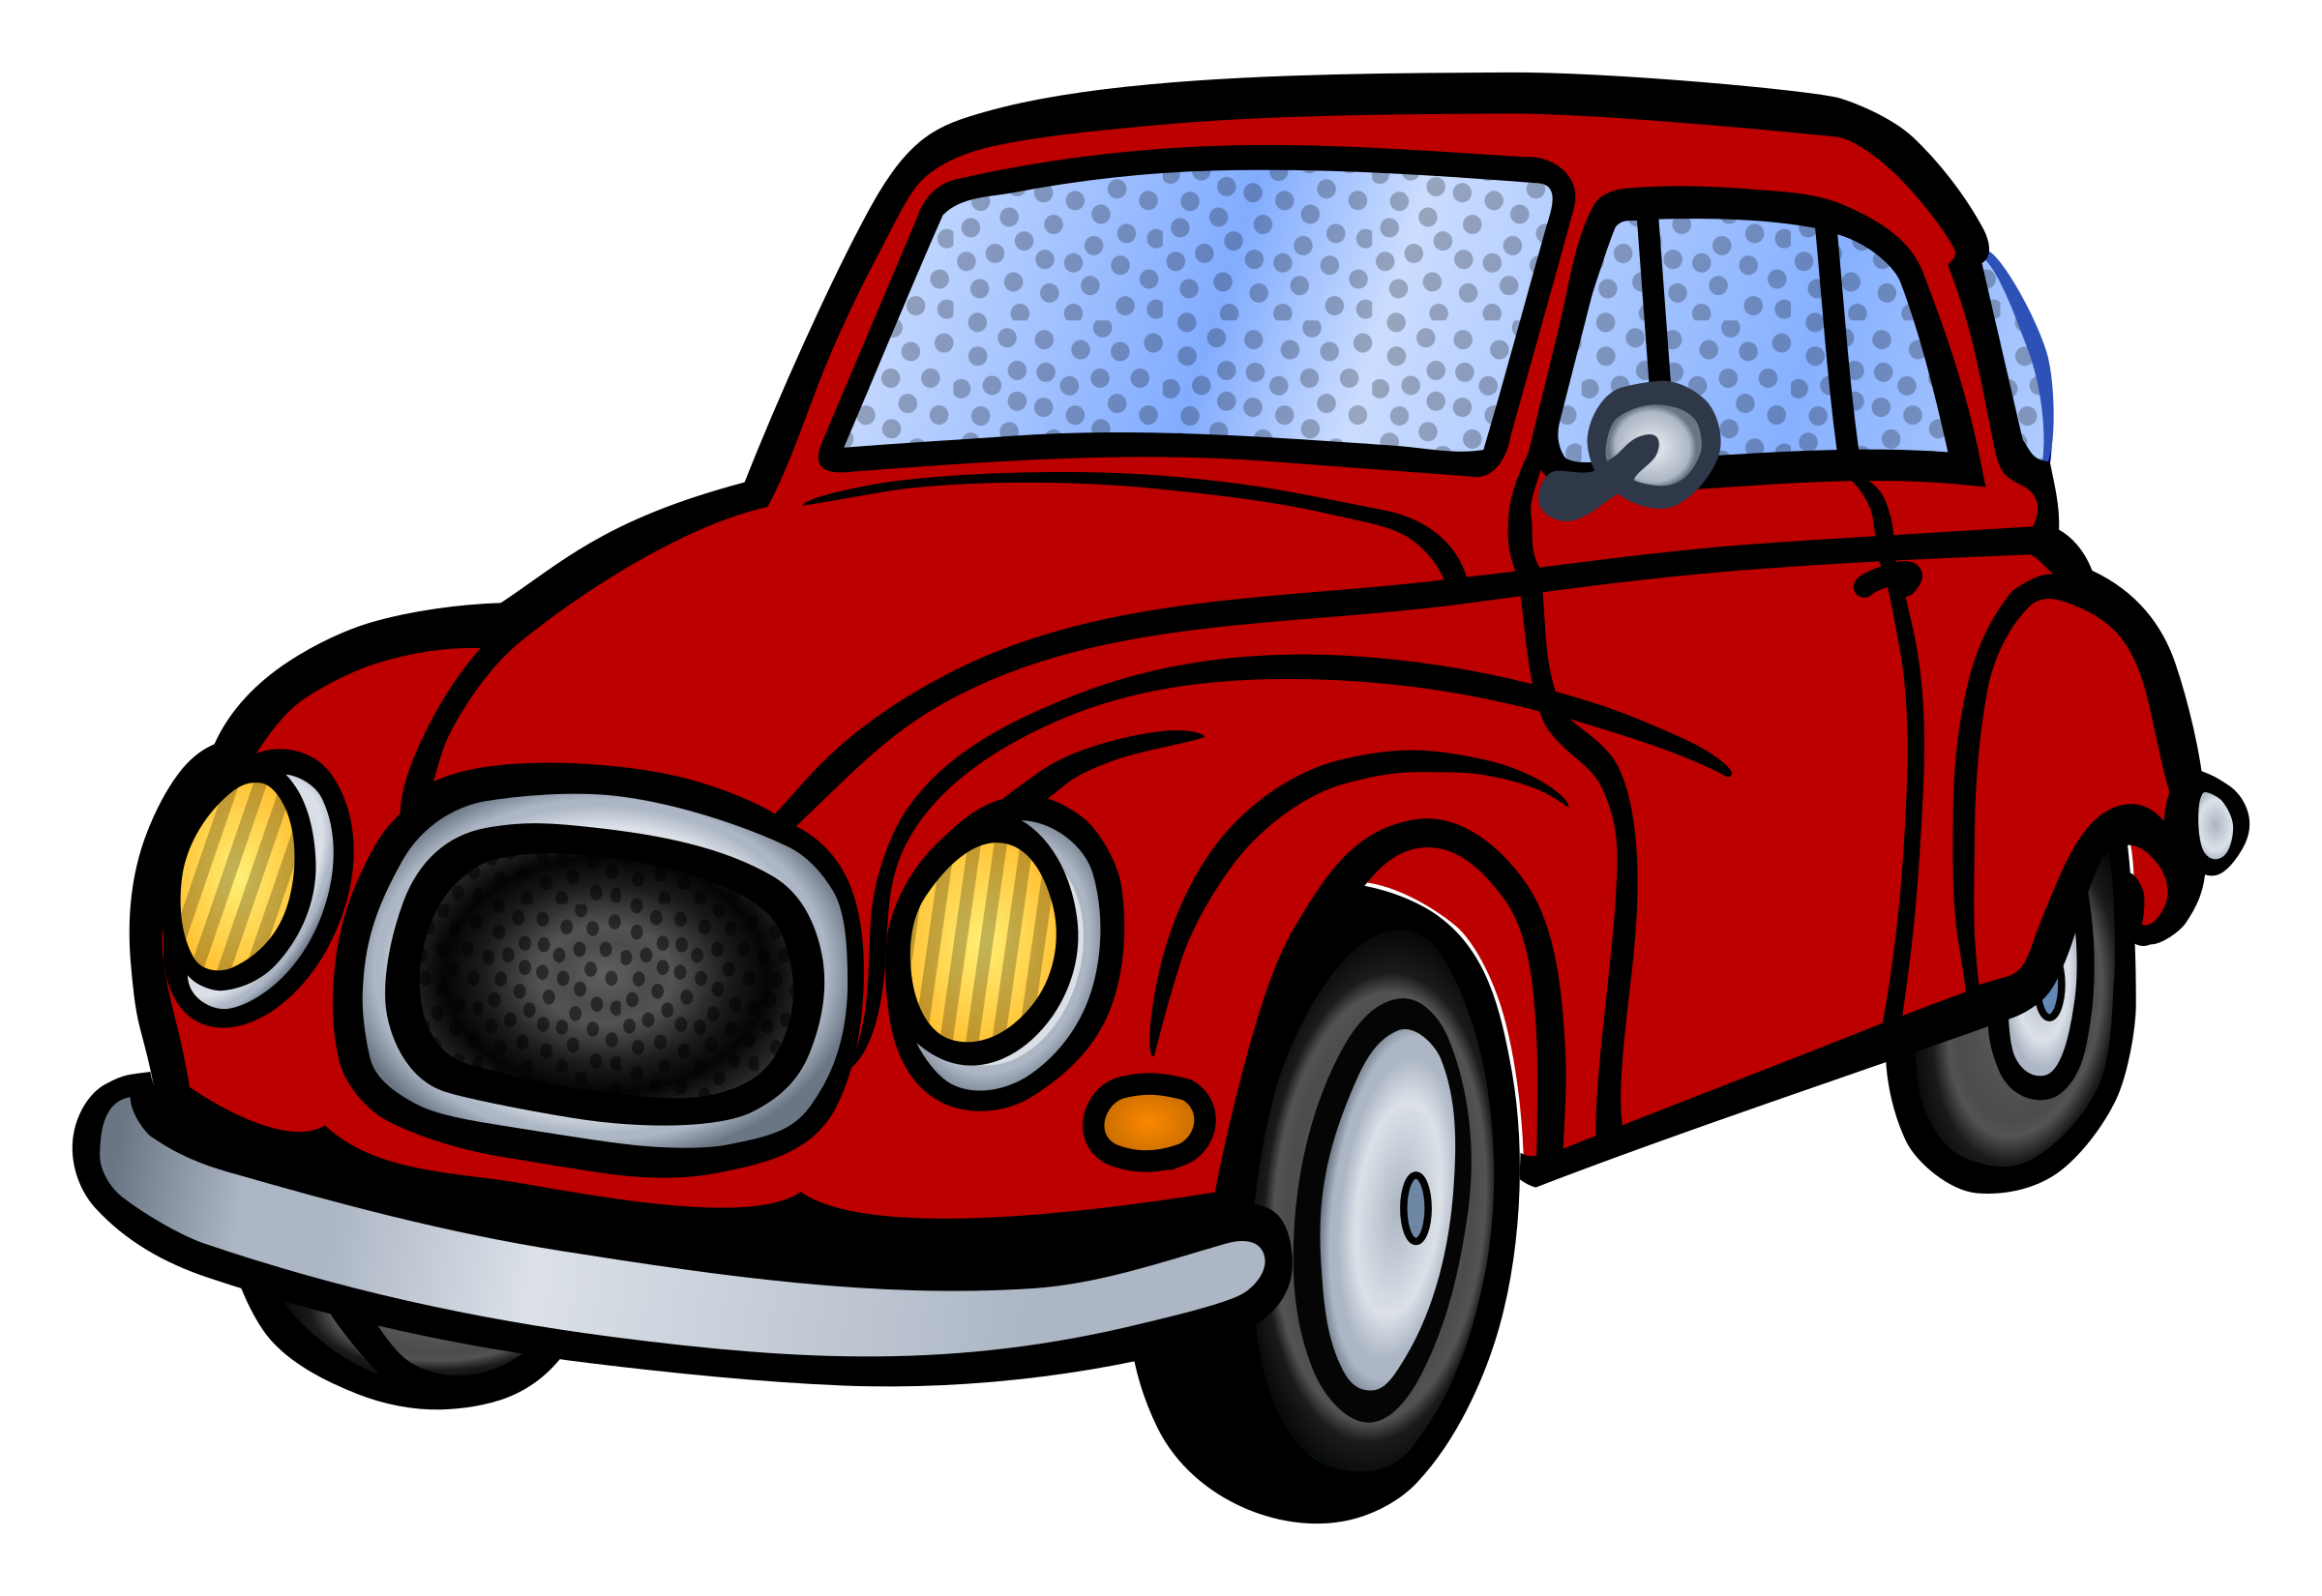 Car with hood open clipart vector royalty free stock Clipart - car - coloured vector royalty free stock